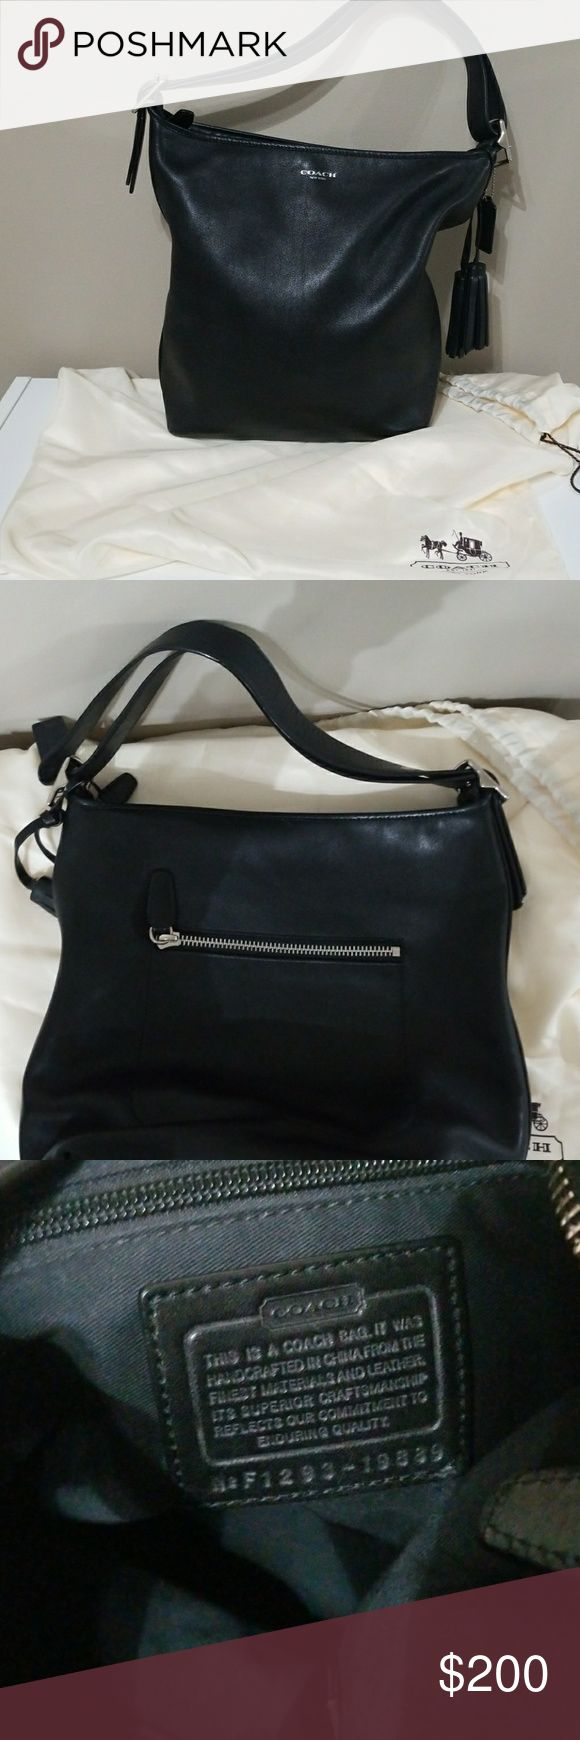 Coach Hobo Bag Authentic Coach Hobo bag.  Top zipper closure.  Inside zipper pocket.  2 open pockets.  Exterior zipper pocket.  Straps convert from shoulder to crossbody straps.  Great for shopping when you need free hands. Slight wear on the bottom edges.  Great condition. Coach Bags Shoulder Bags